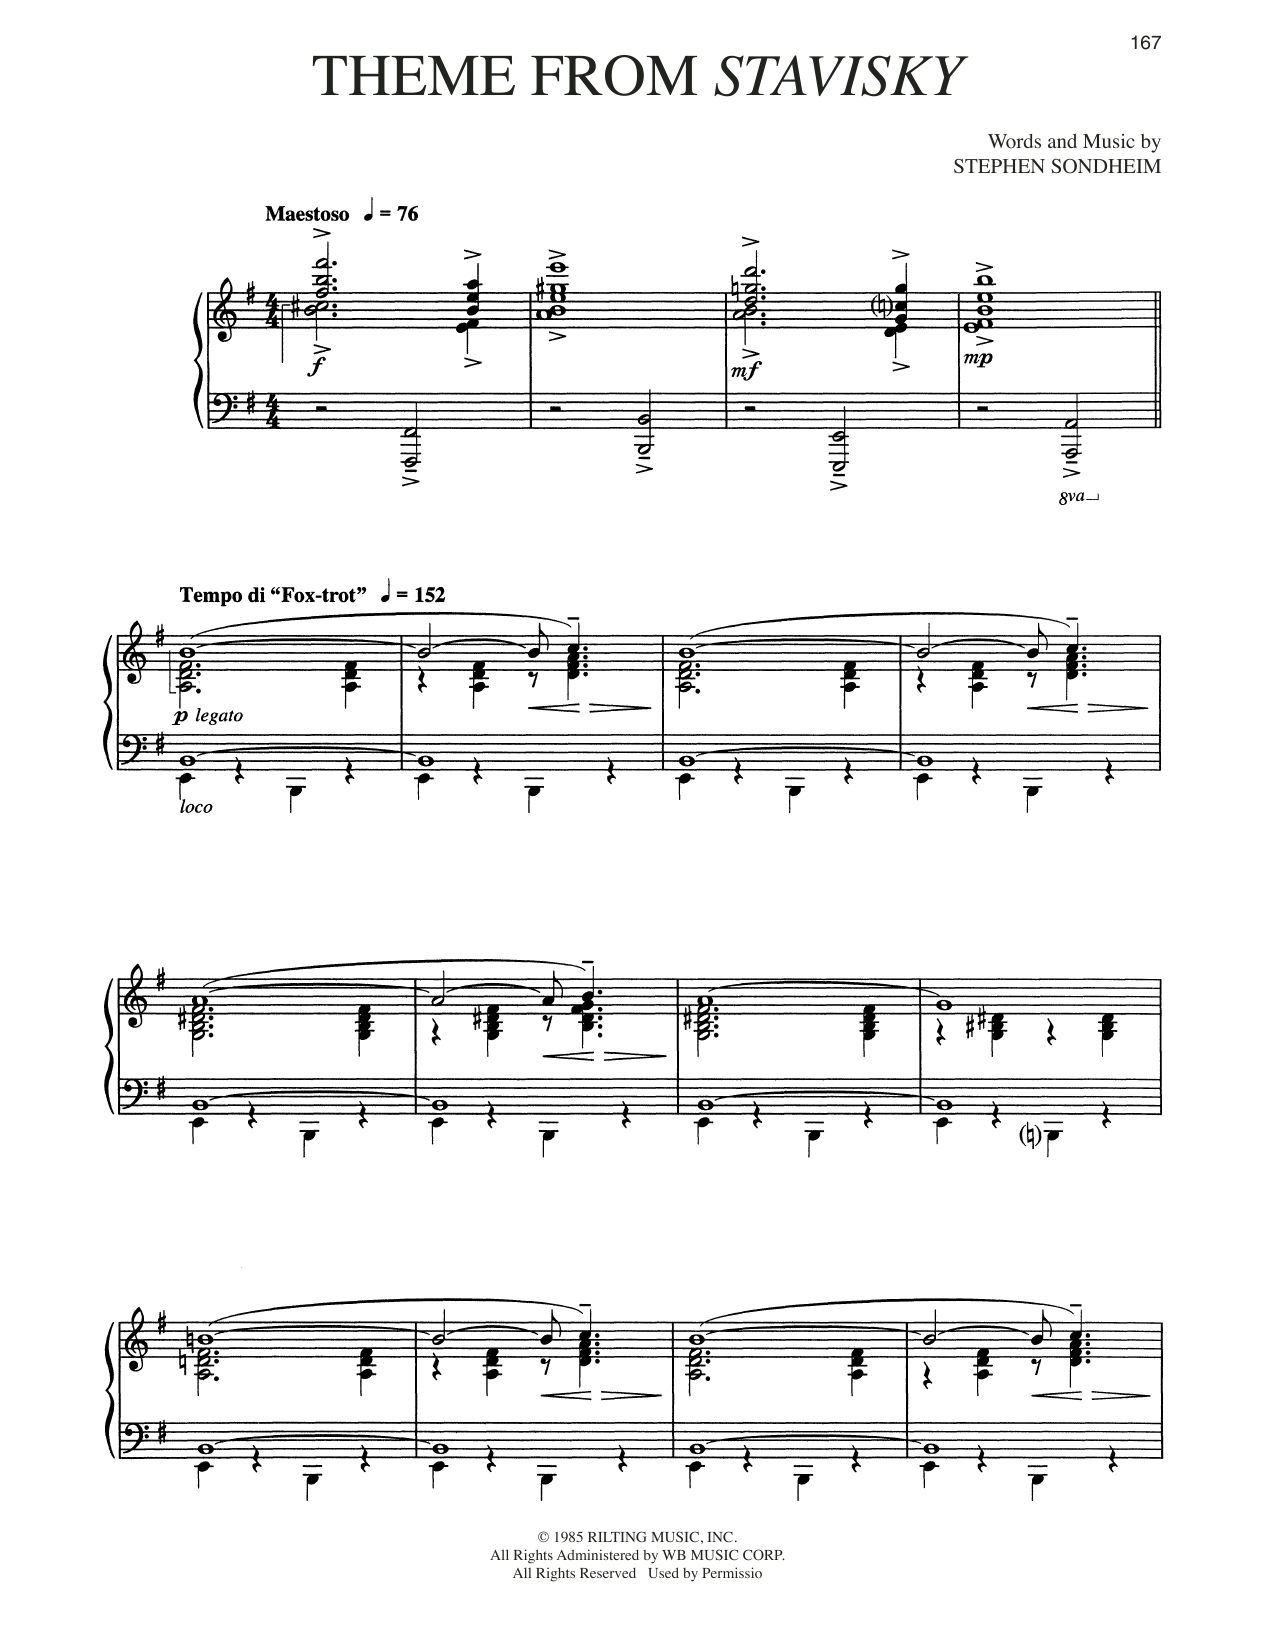 Stephen Sondheim Theme From Stavisky sheet music notes and chords. Download Printable PDF.